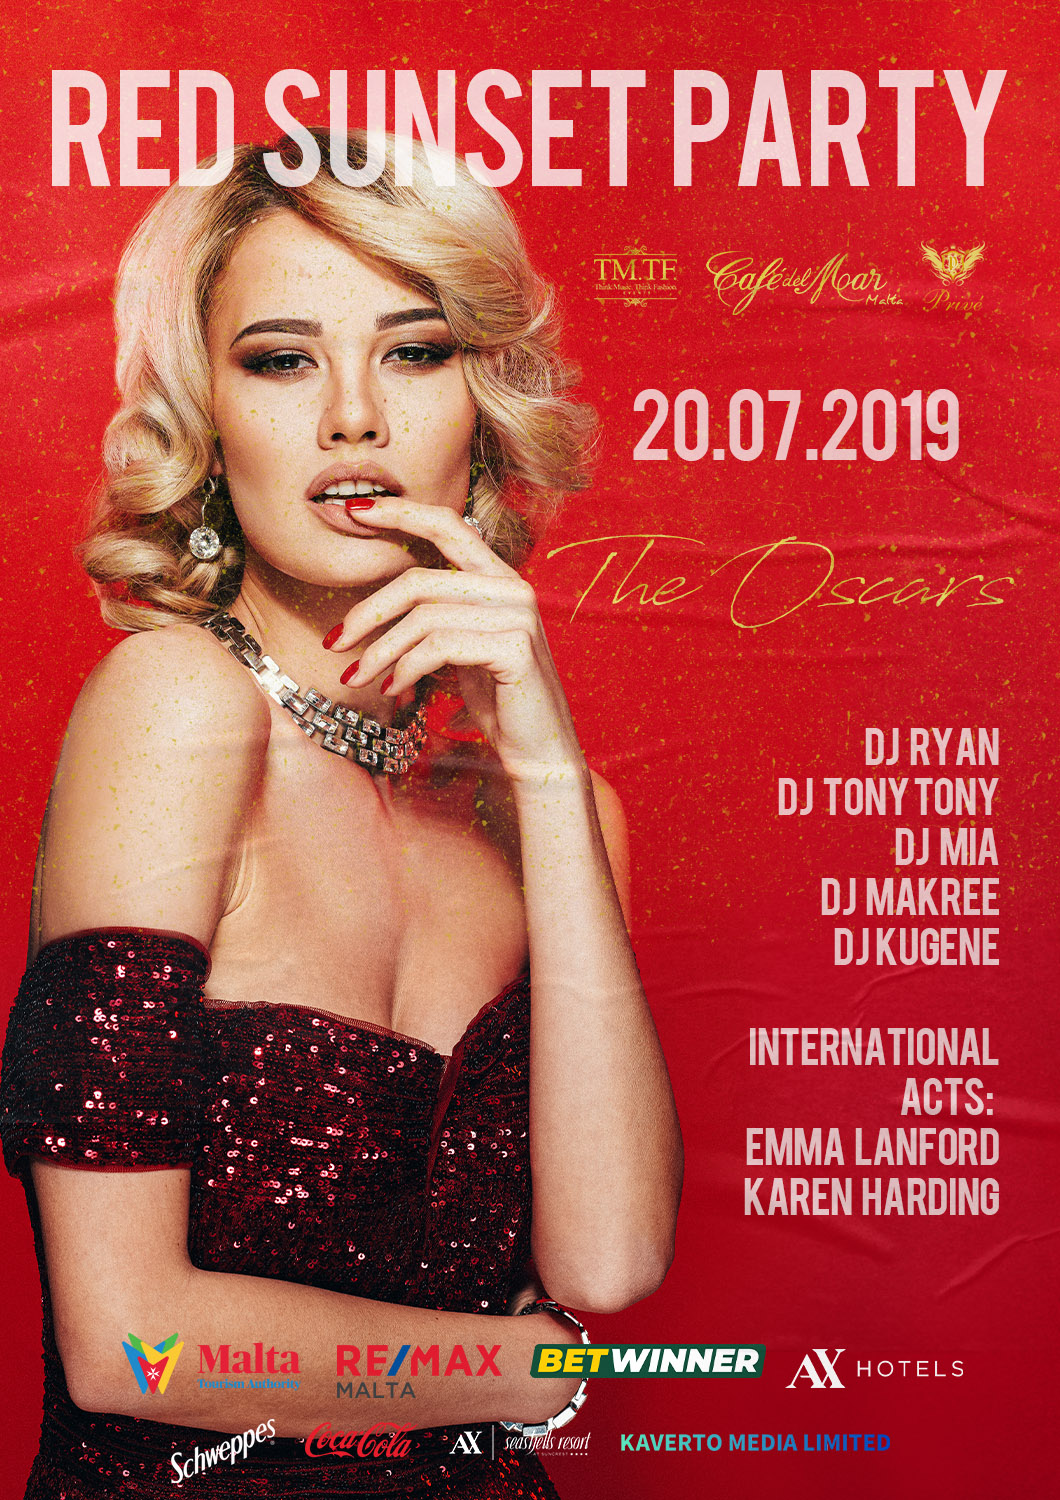 Red Sunset Party 2019